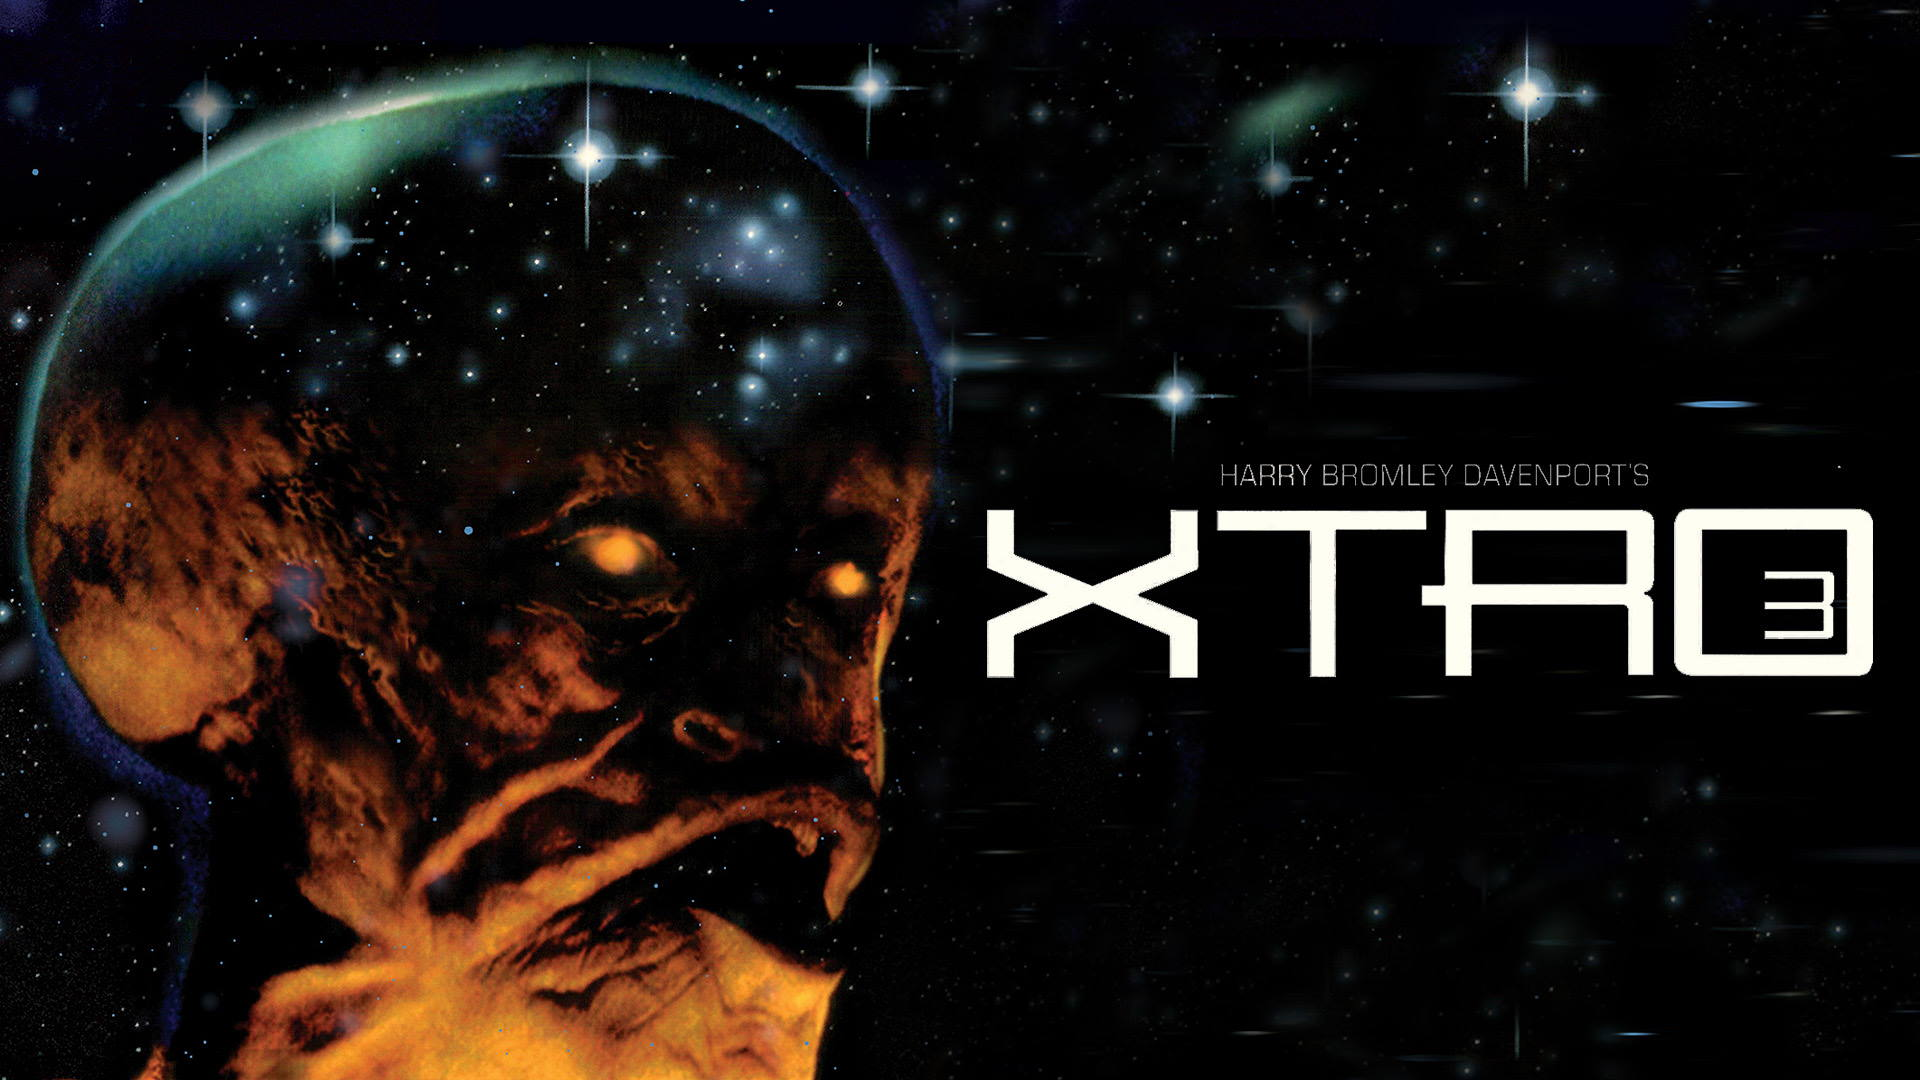 Xtro 3: Watch the Skies   Official Trailer   FlixHouse